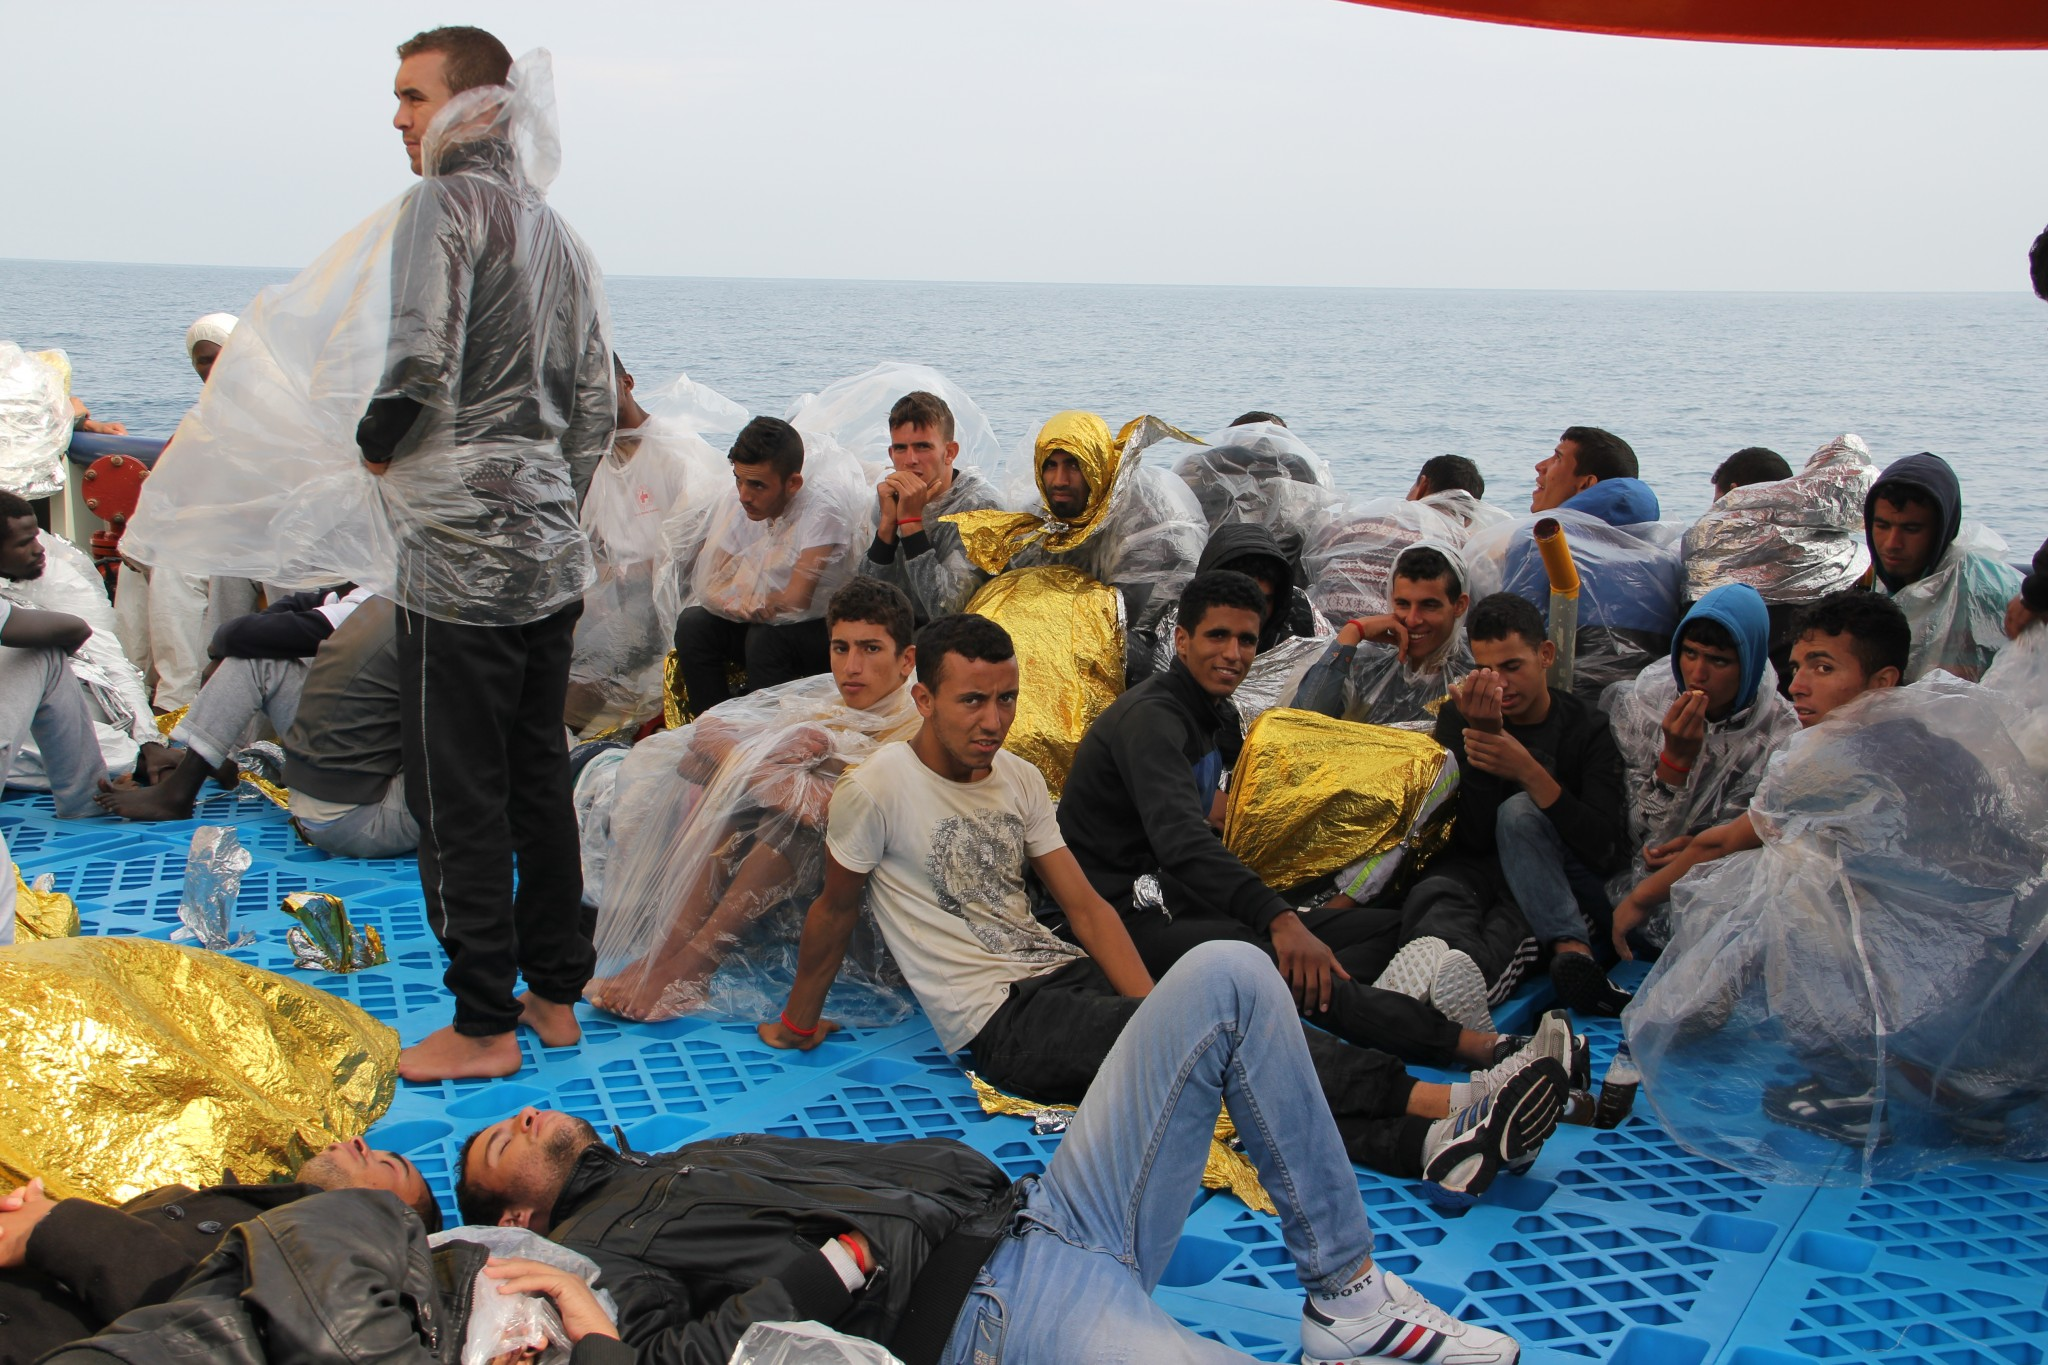 The refugees come from several different conflict regions, all trying to reach safety in crowded boats. Photo: courtesy